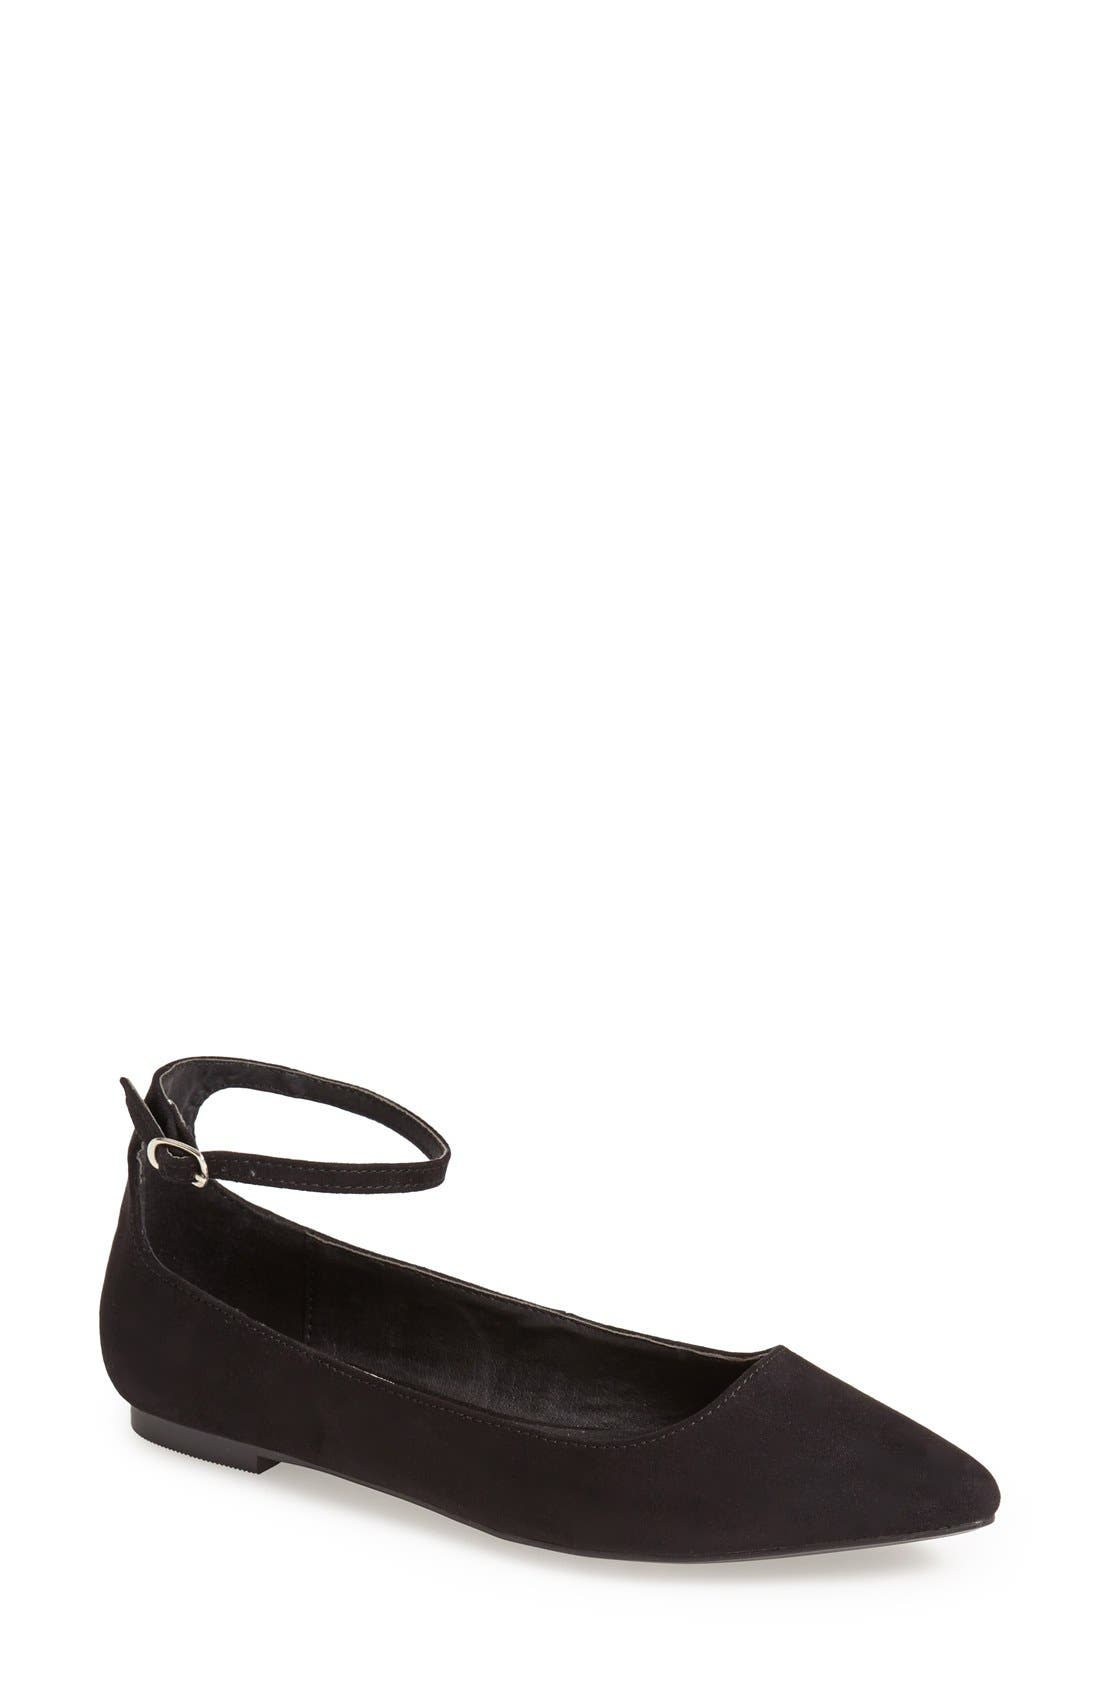 Alternate Image 1 Selected - Topshop 'Saloon' Ankle Strap Flat (Women)